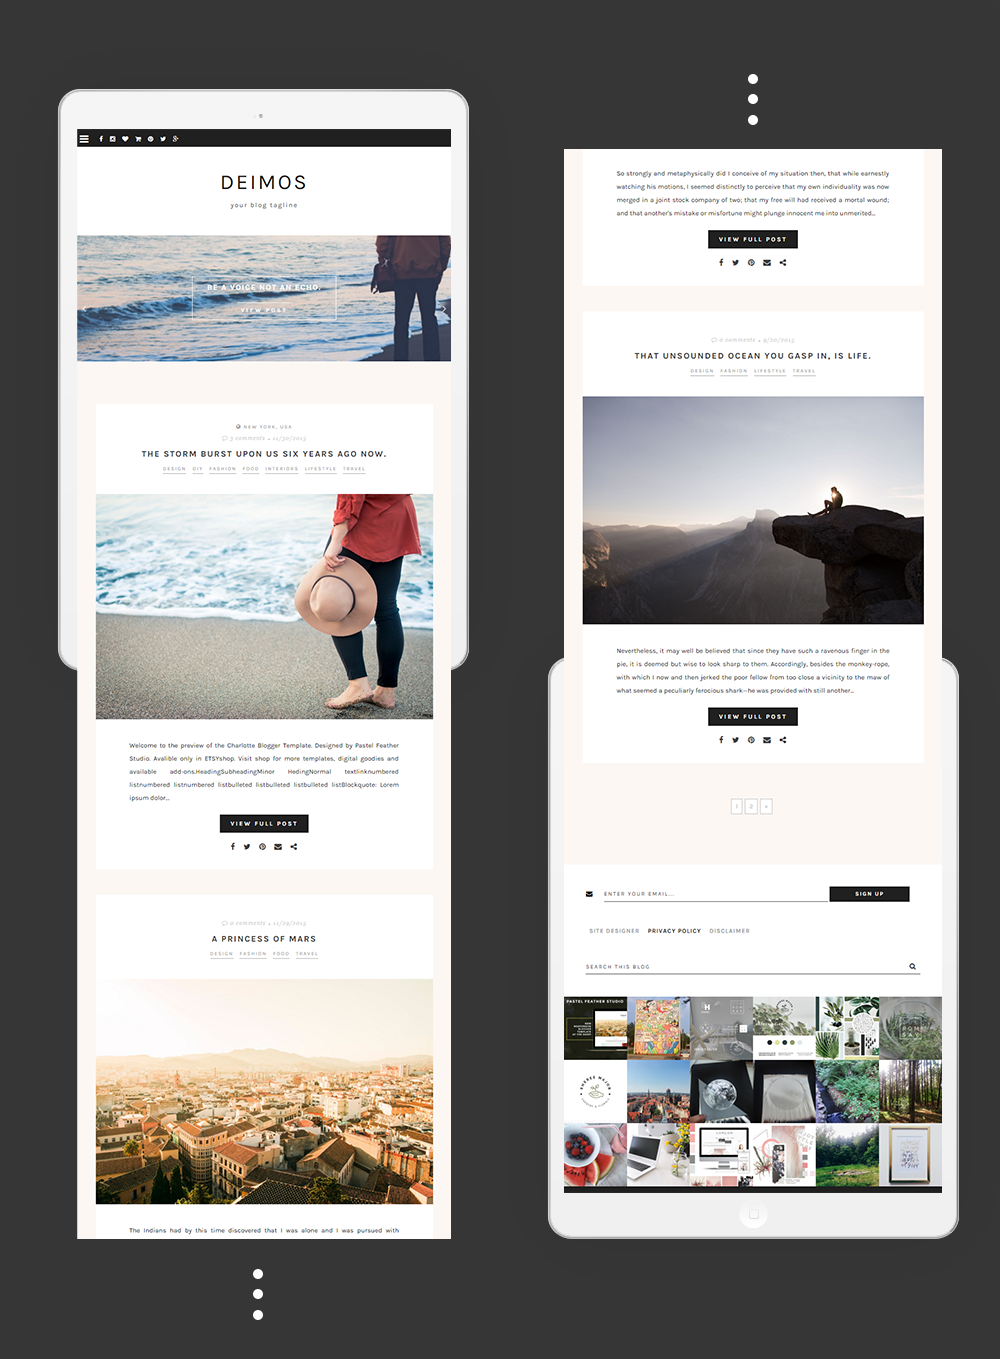 deimos blogger template | P△STEL FEATHER STUDIO